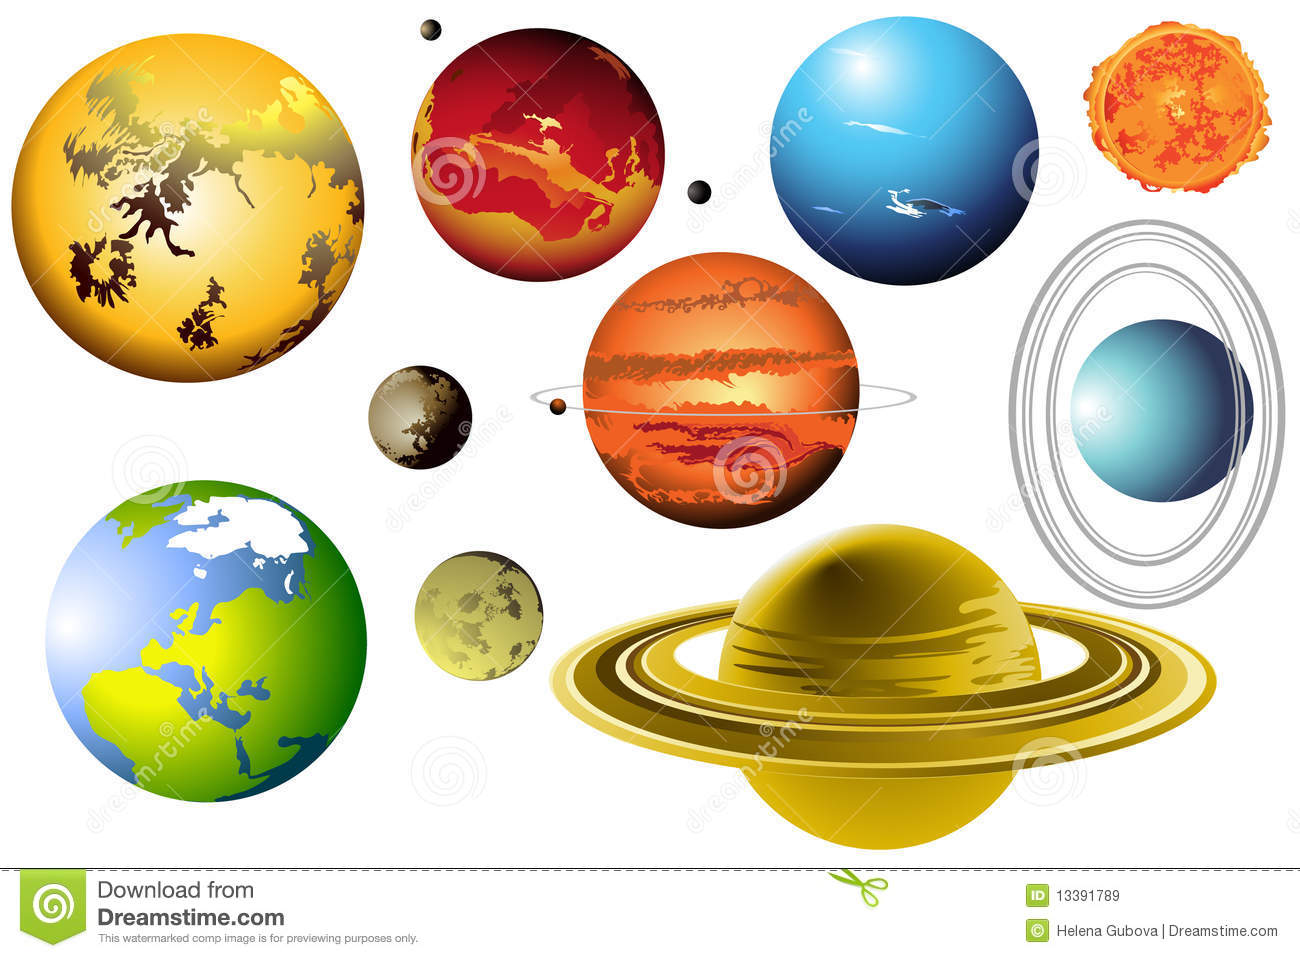 solar system factsheet also Pla  Scale further label the pla s 1 likewise Pla  Mars Coloring Pages for Kids further neptune coloring pages 7 additionally  also space coloring pages further  likewise  moreover Pla  Earth Coloring Page in addition Dünya Boyama Sayfaları 3. on planet mercury coloring pages printables